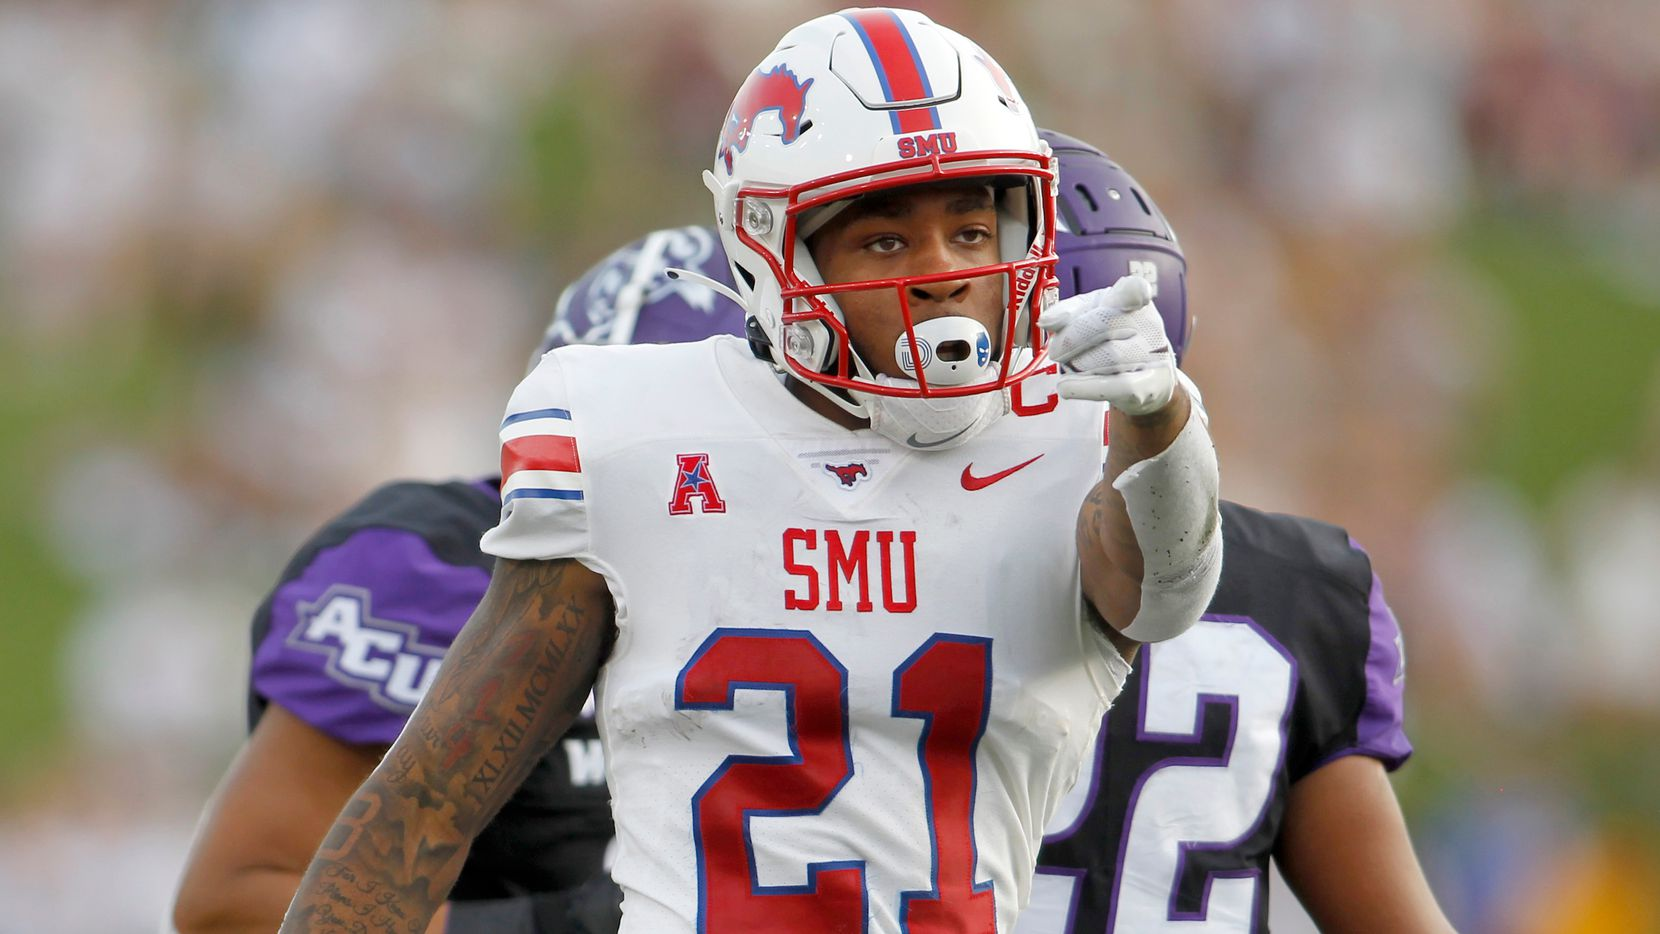 SMU receiver Reggie Roberson, Jr, (21) gestures after making a reception for a first down during first half action against Abilene Christian University. The two teams played their season opening football game at SMU's Ford Stadium in Dallas on September 4, 2021. (Steve Hamm/ Special Contributor)